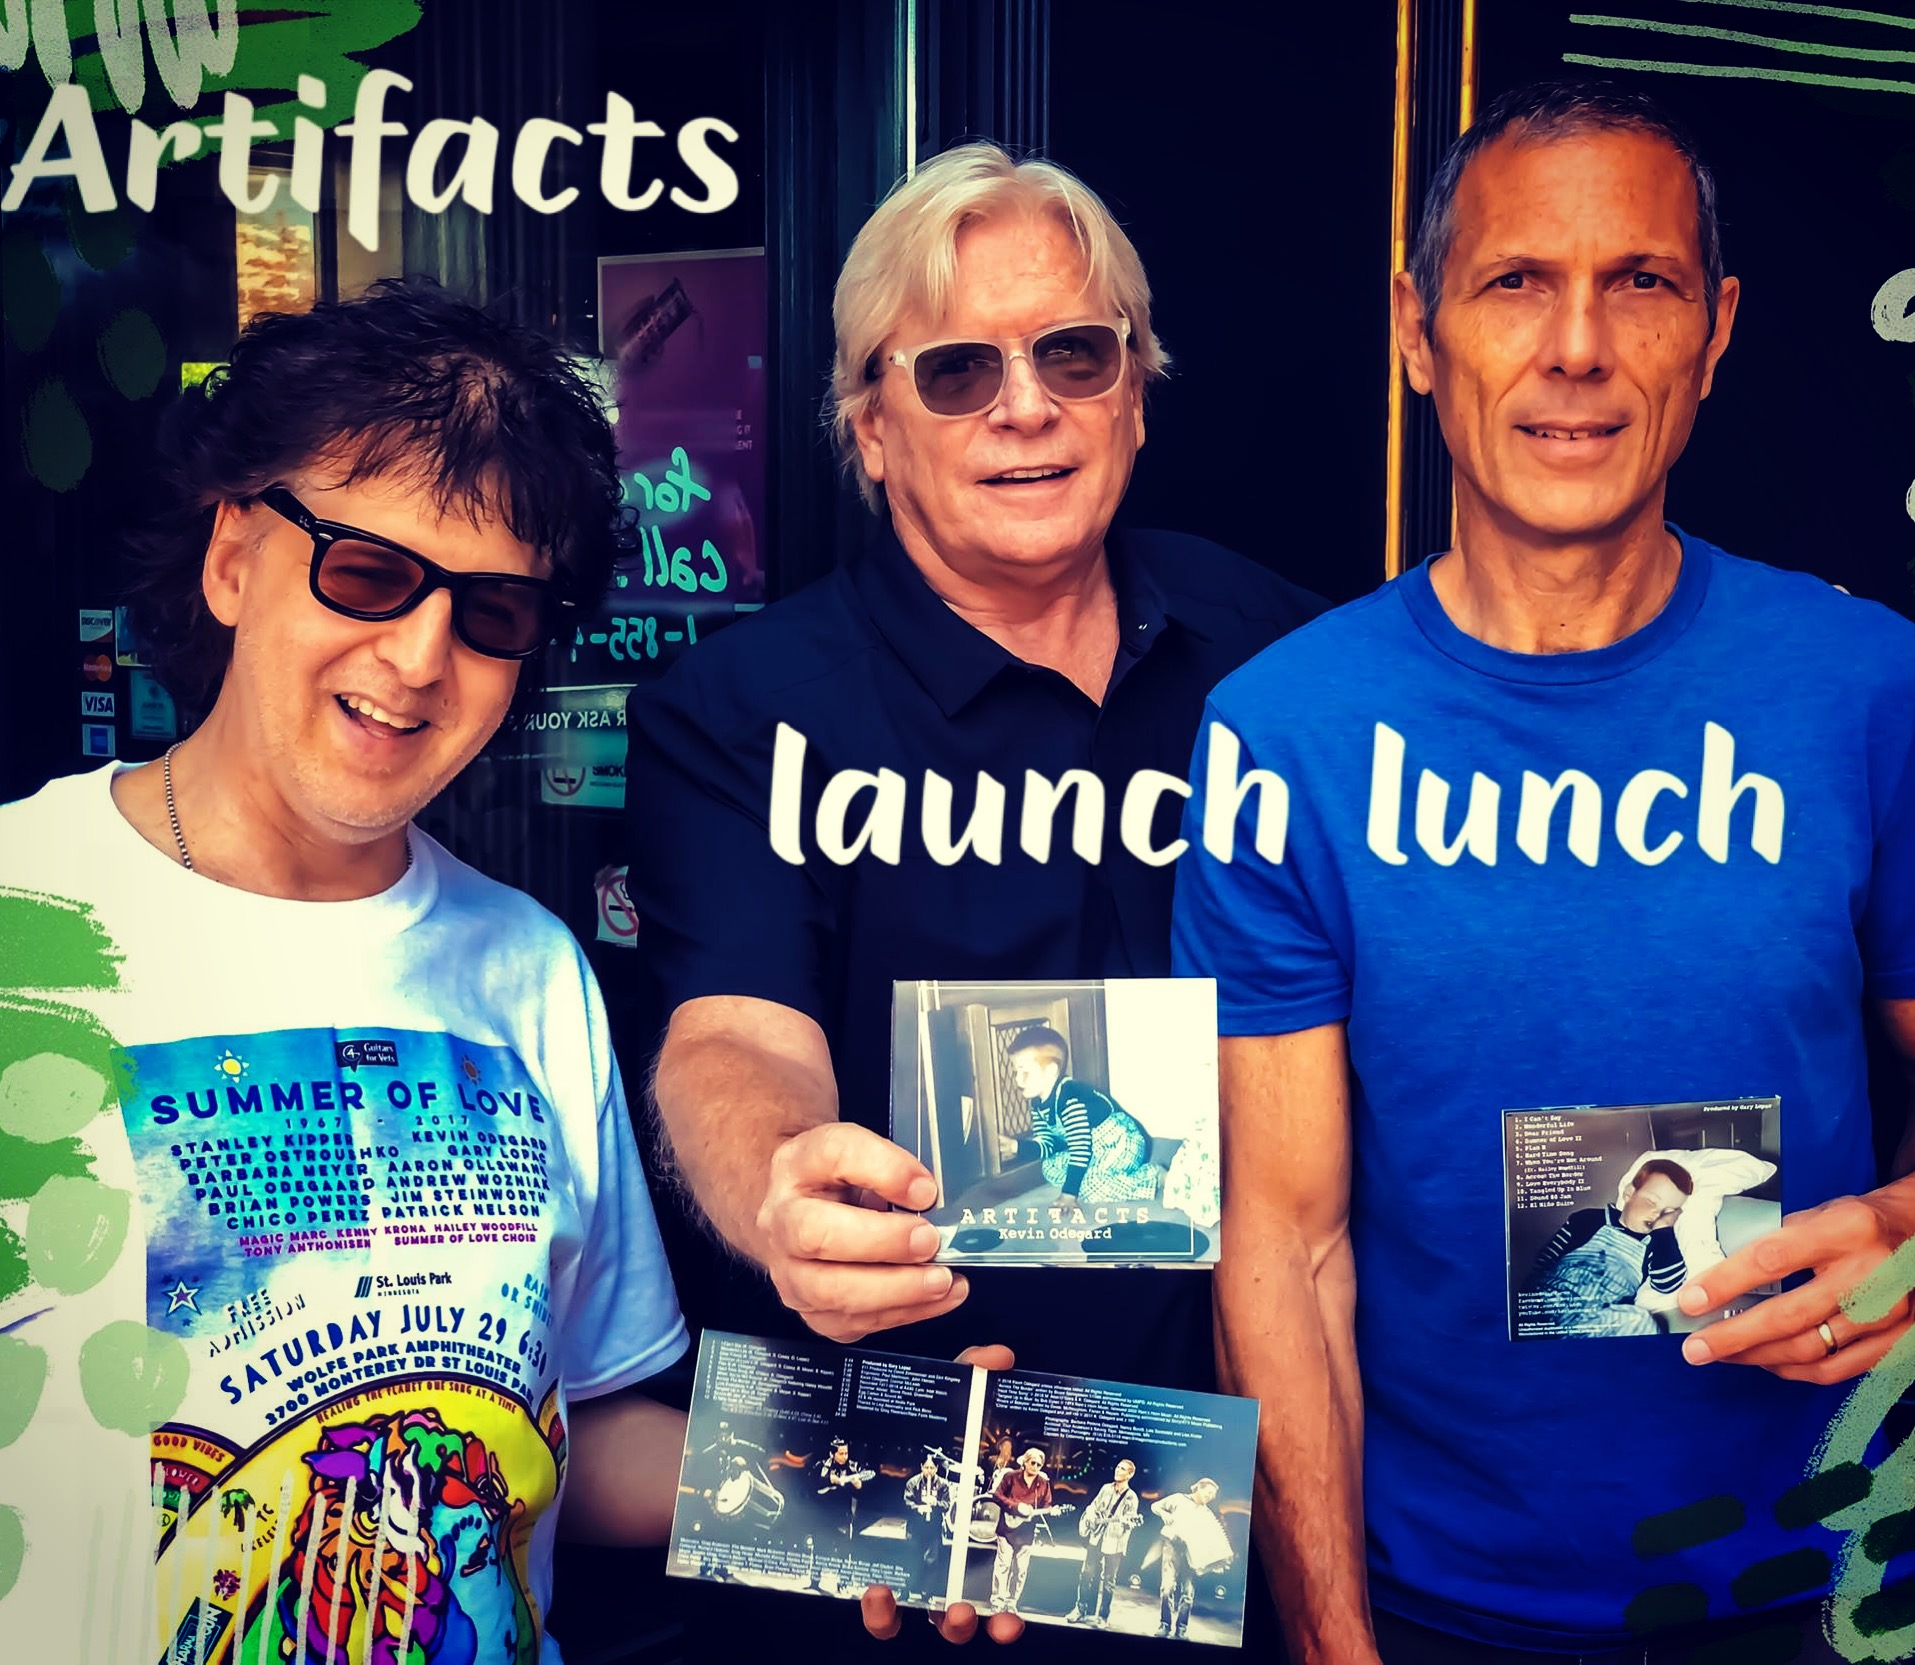 Magic Marc, Kevin Odegard and Gary Lopac - ARTIFACTS (Compact Disc - CD)  The Claddagh Irish Pub & Restaurant  Maple Grove, MN / August 9th, 2018